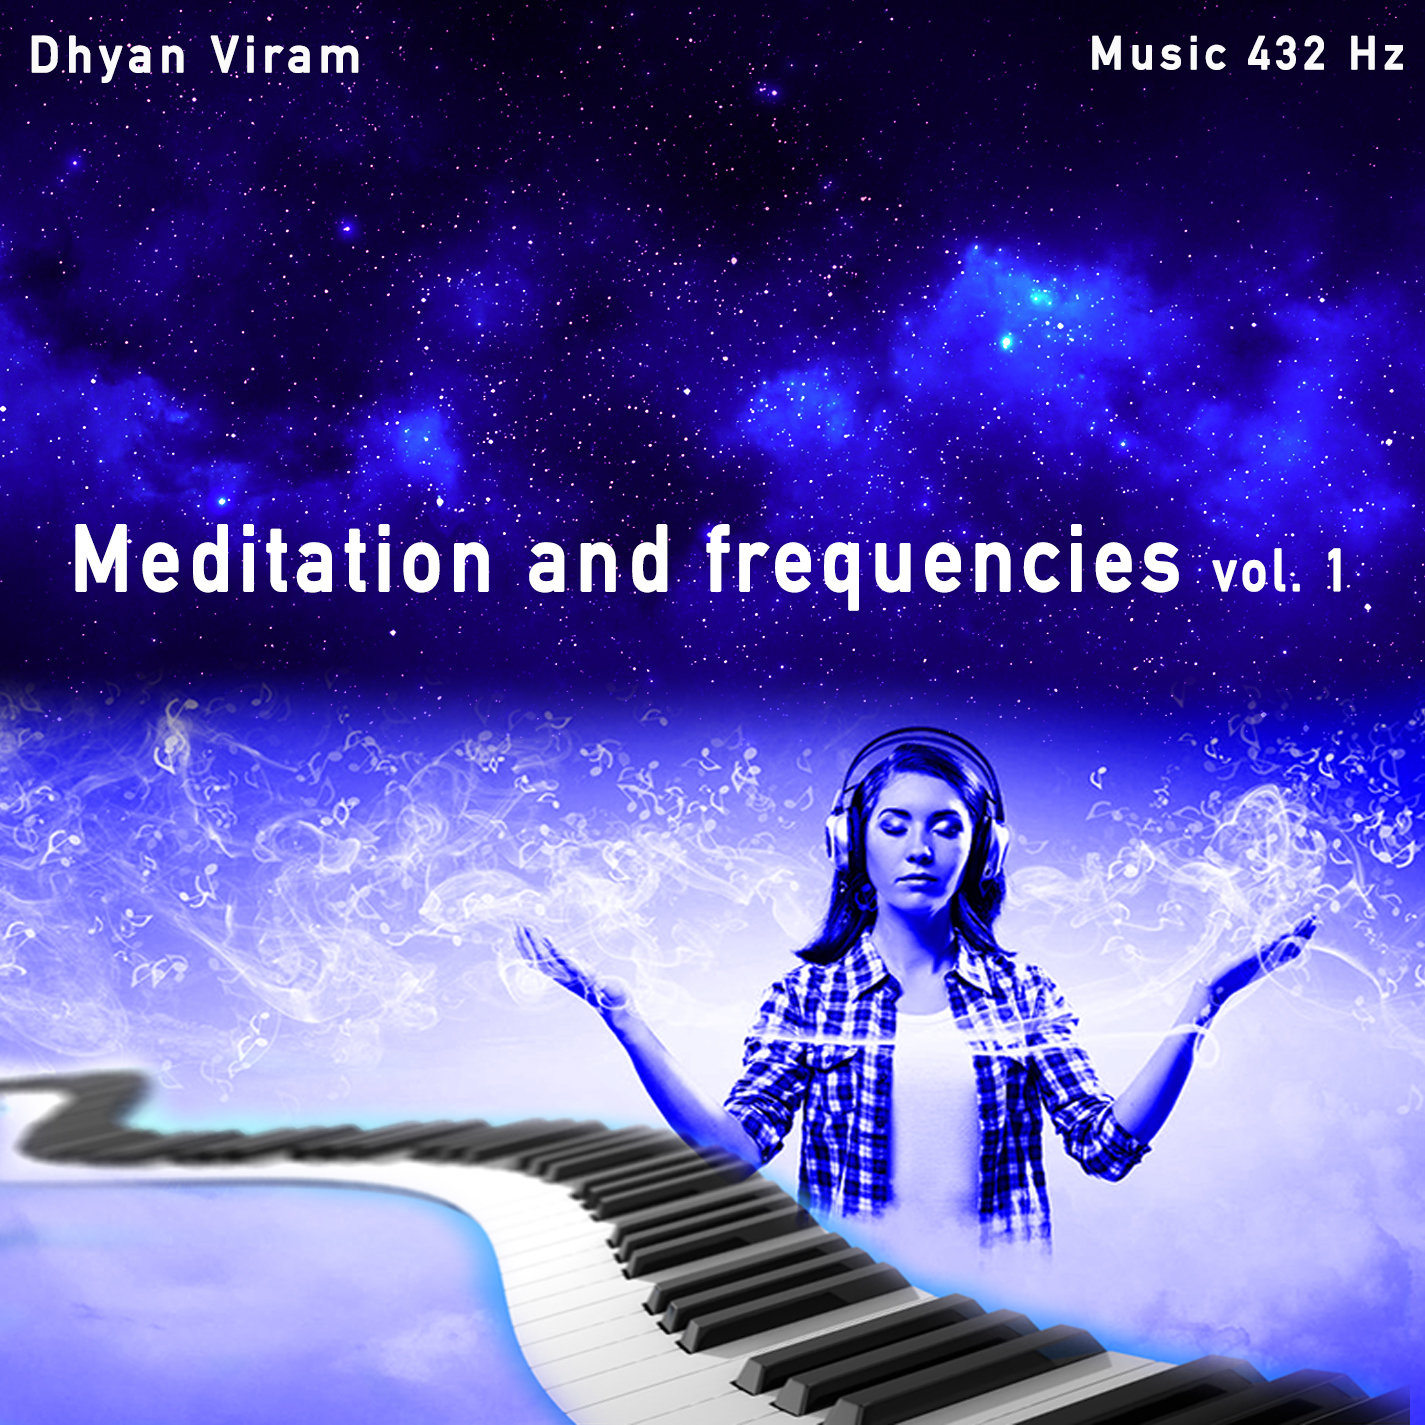 Meditation and frequencies vol. 1